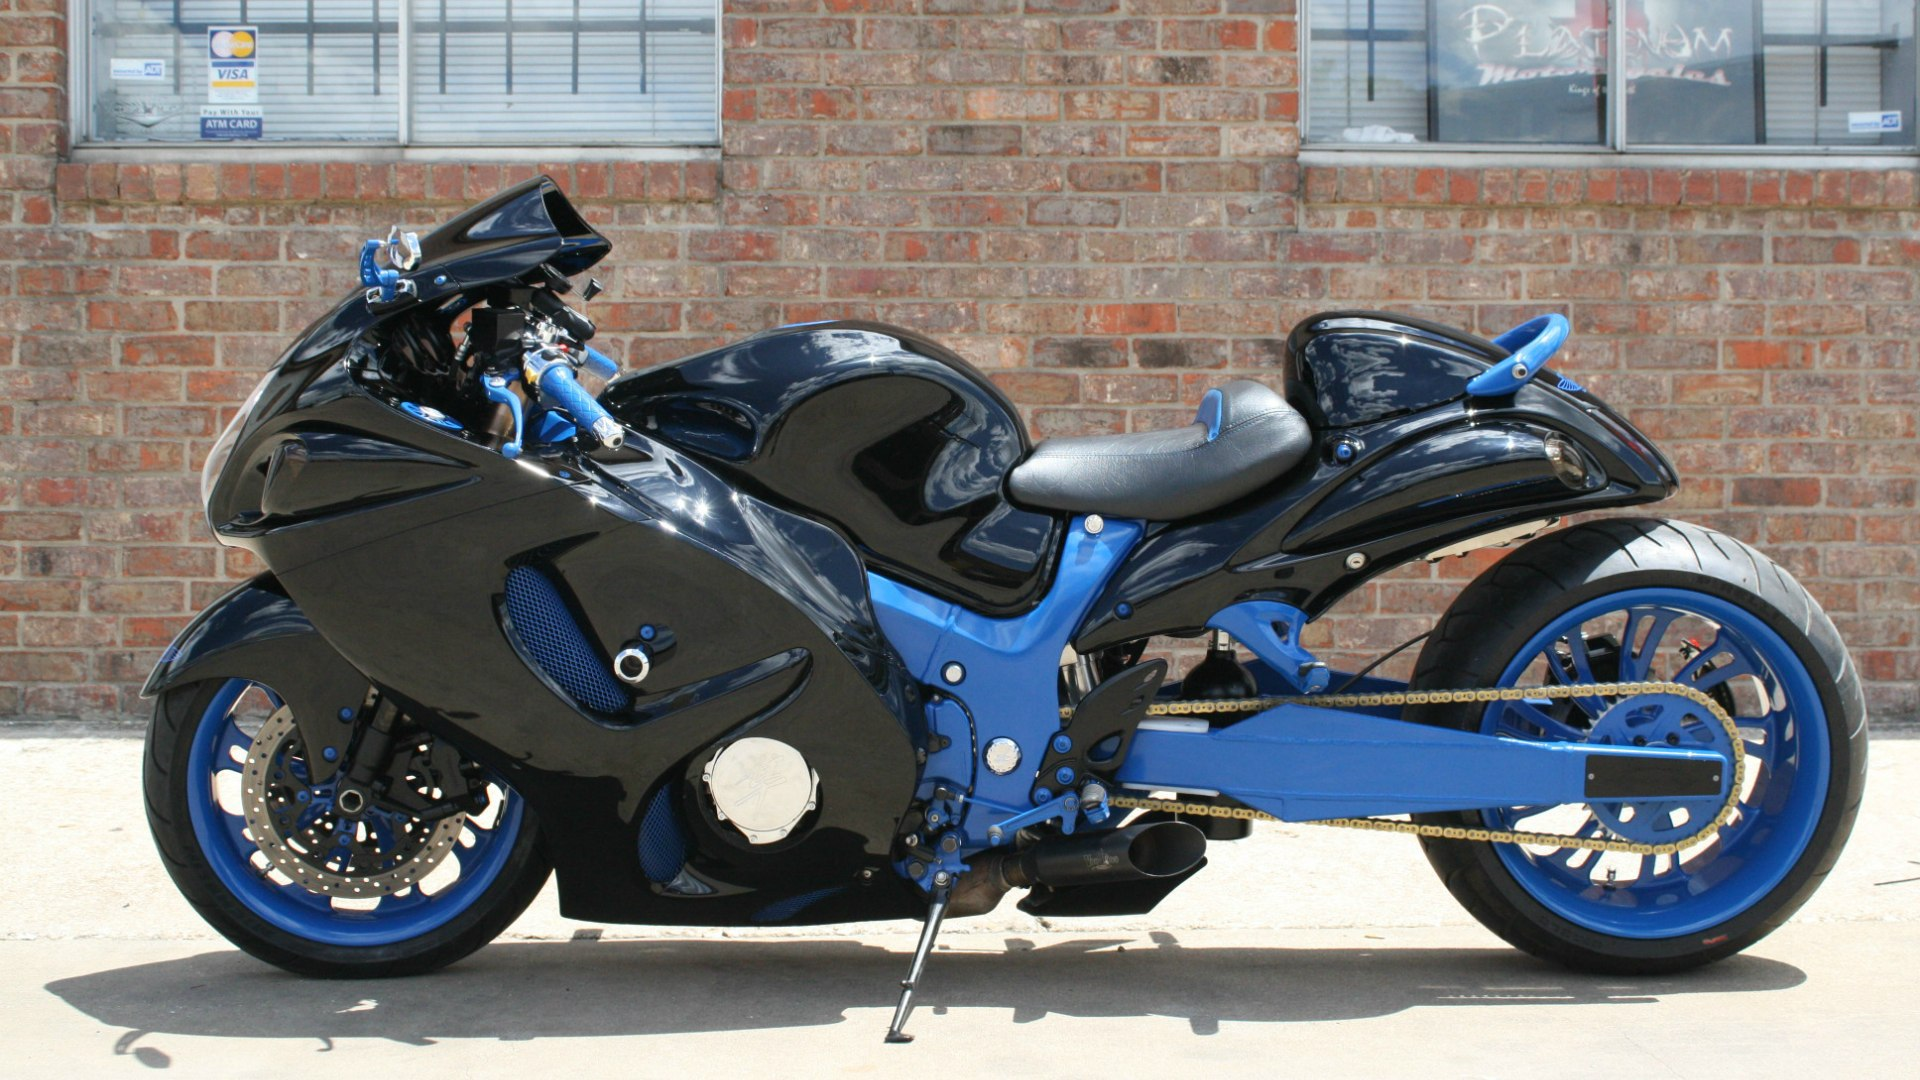 amazing sports bike long life hd picture images photos